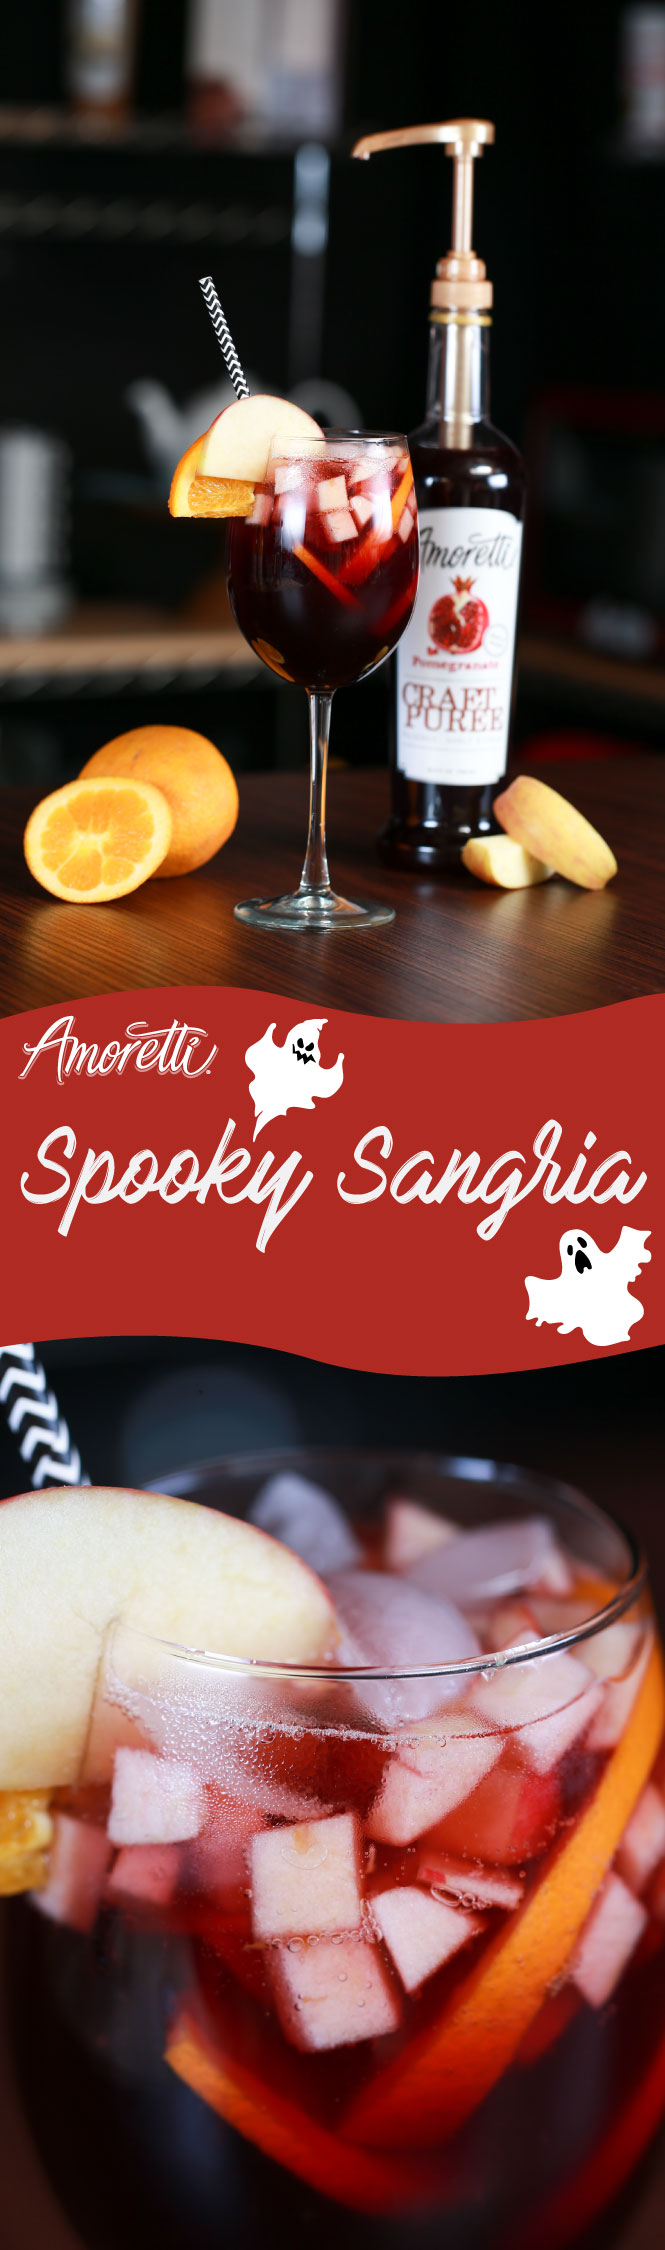 A kick of our Pomegranate Craft Purée™ is why this sangria tastes so spooky delicious!